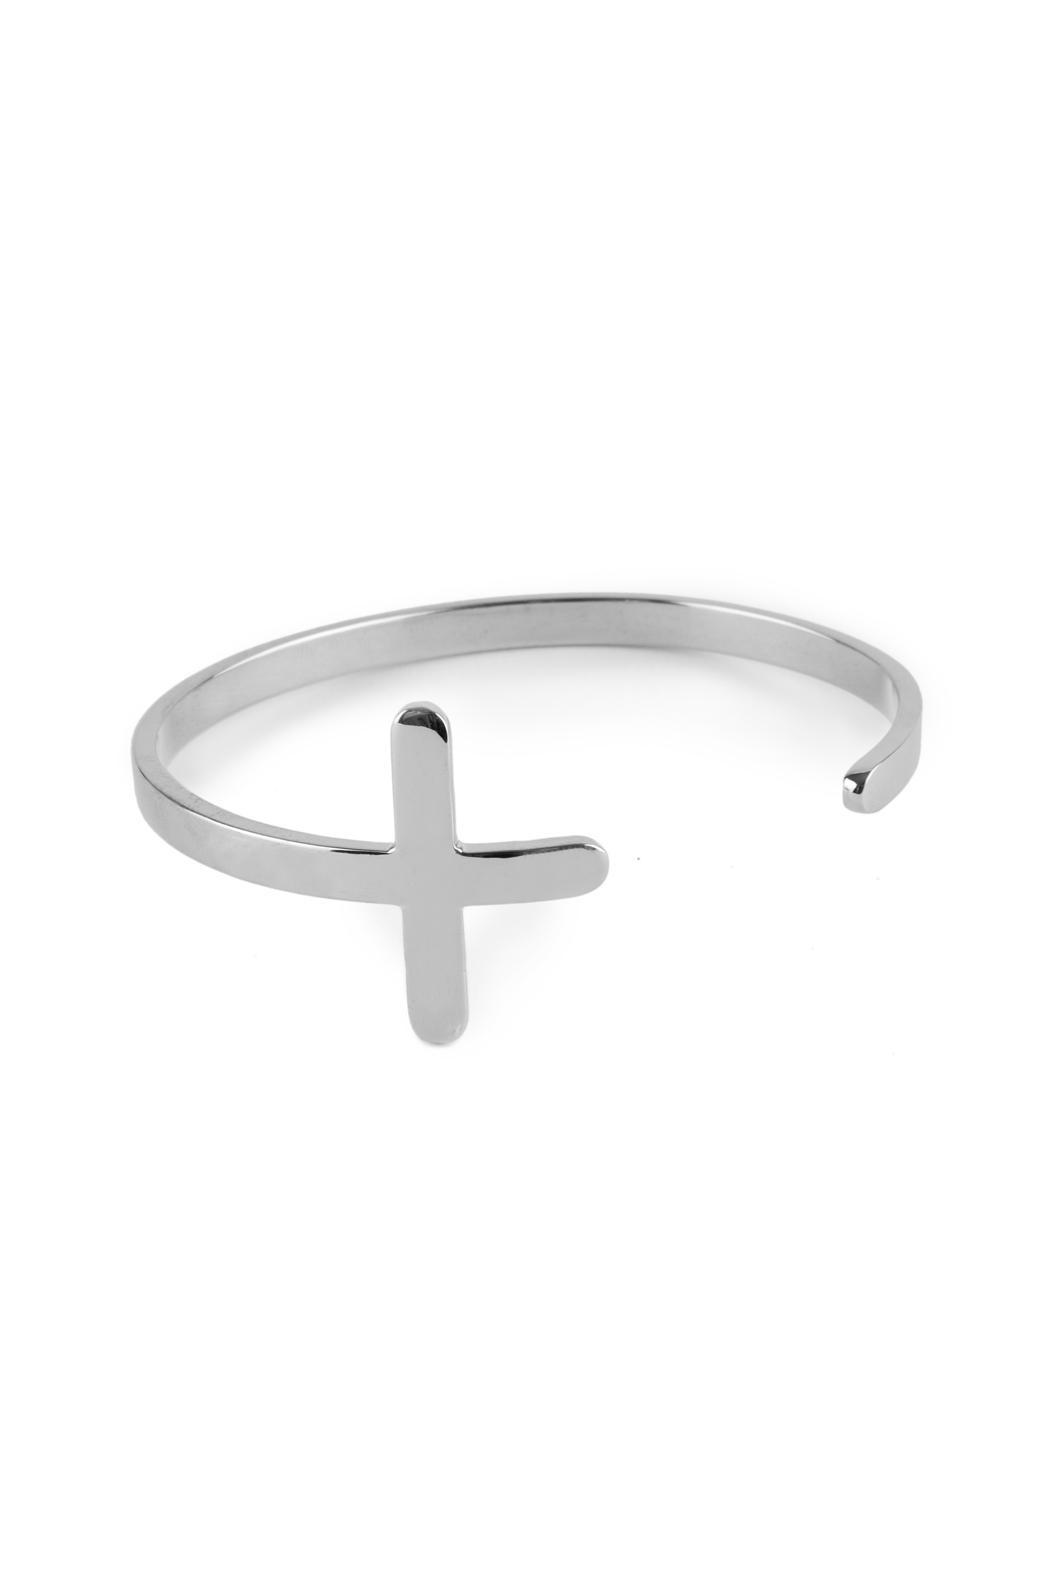 Niqua Jewelry Silver Cross Cuff - Main Image